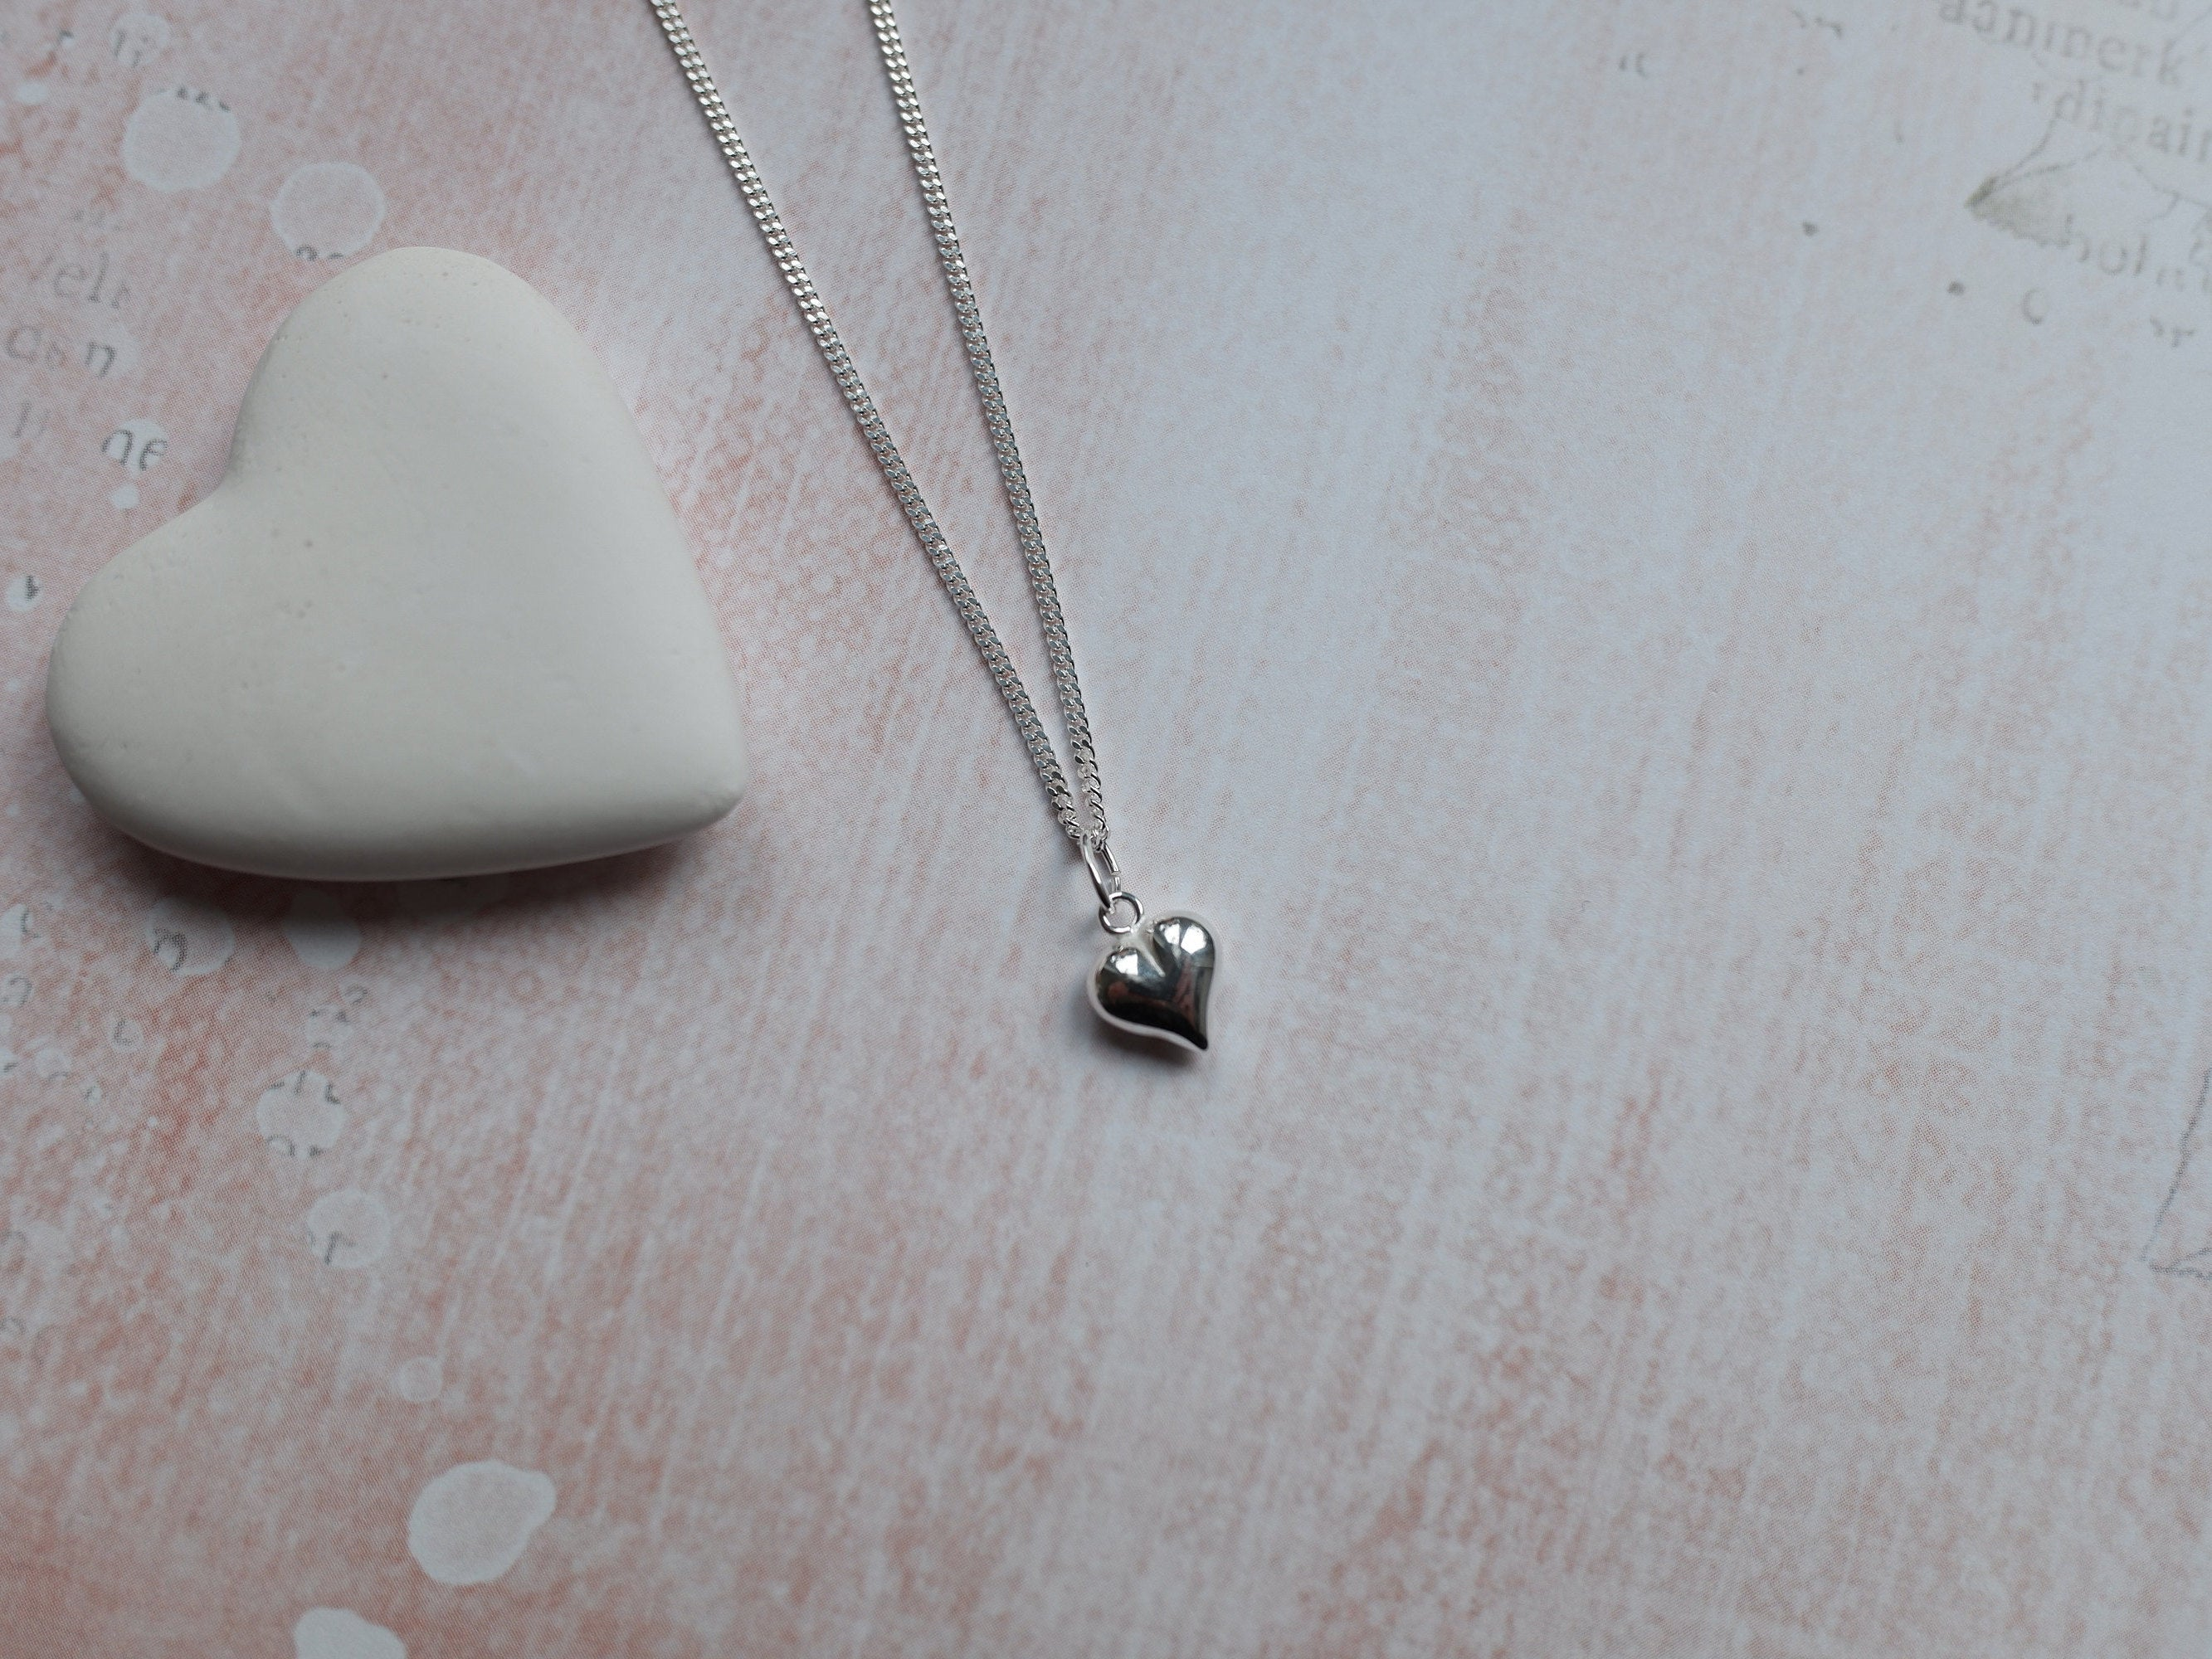 Sterling Silver Puffed Heart Charm Pendant Necklace - Diamond Cut Sterling Silver Chain - Valentines Jewellery